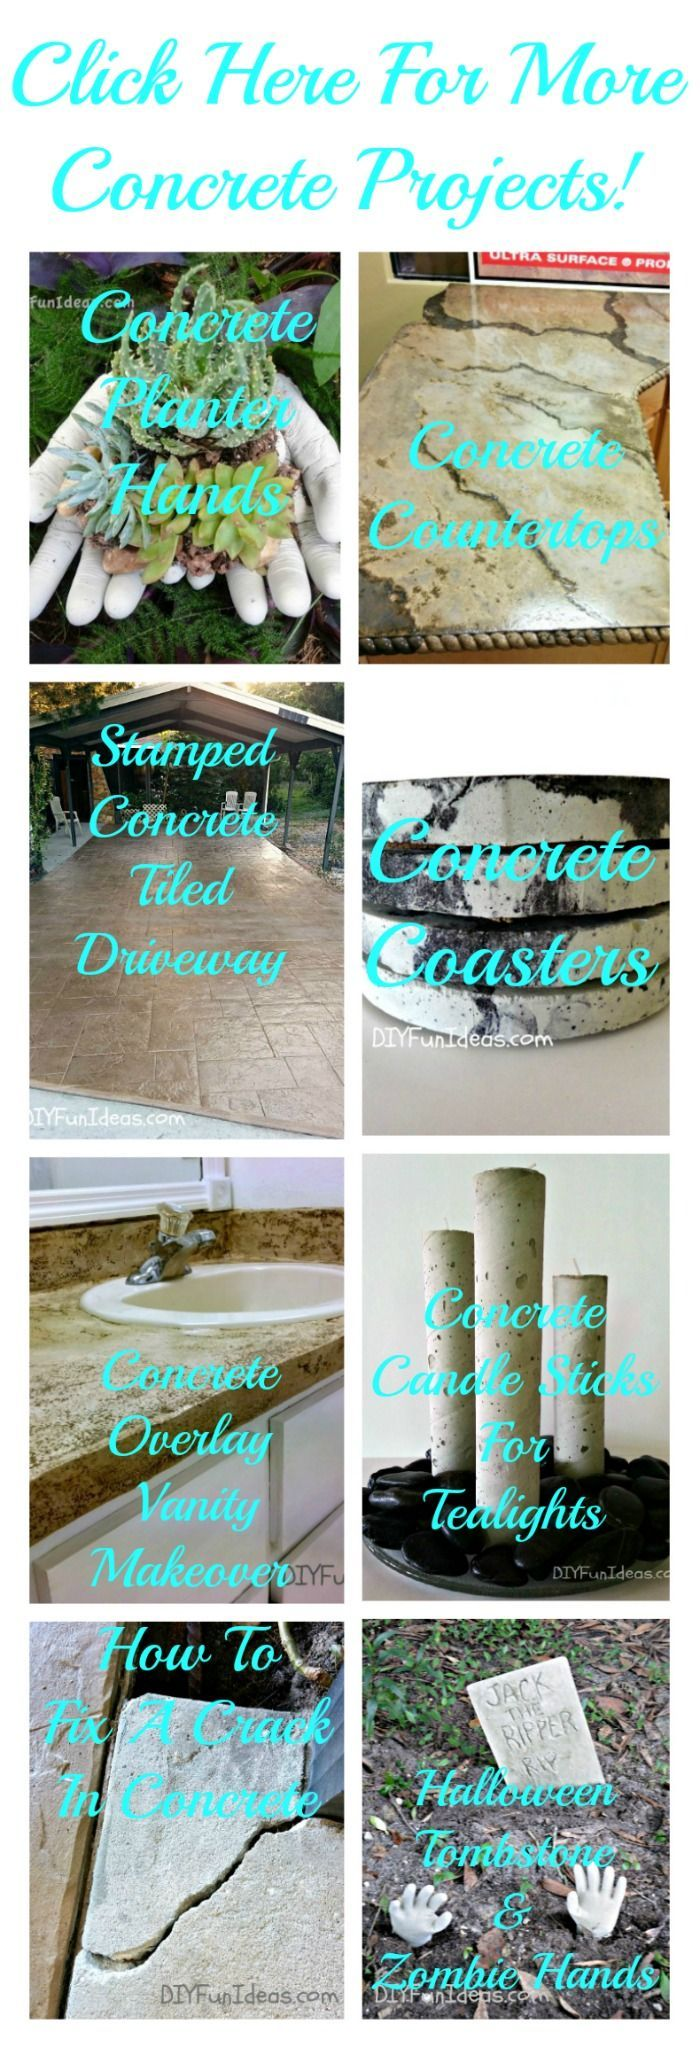 DIY Concrete Hand Planters & Bowls - Do-It-Yourself Fun Ideas